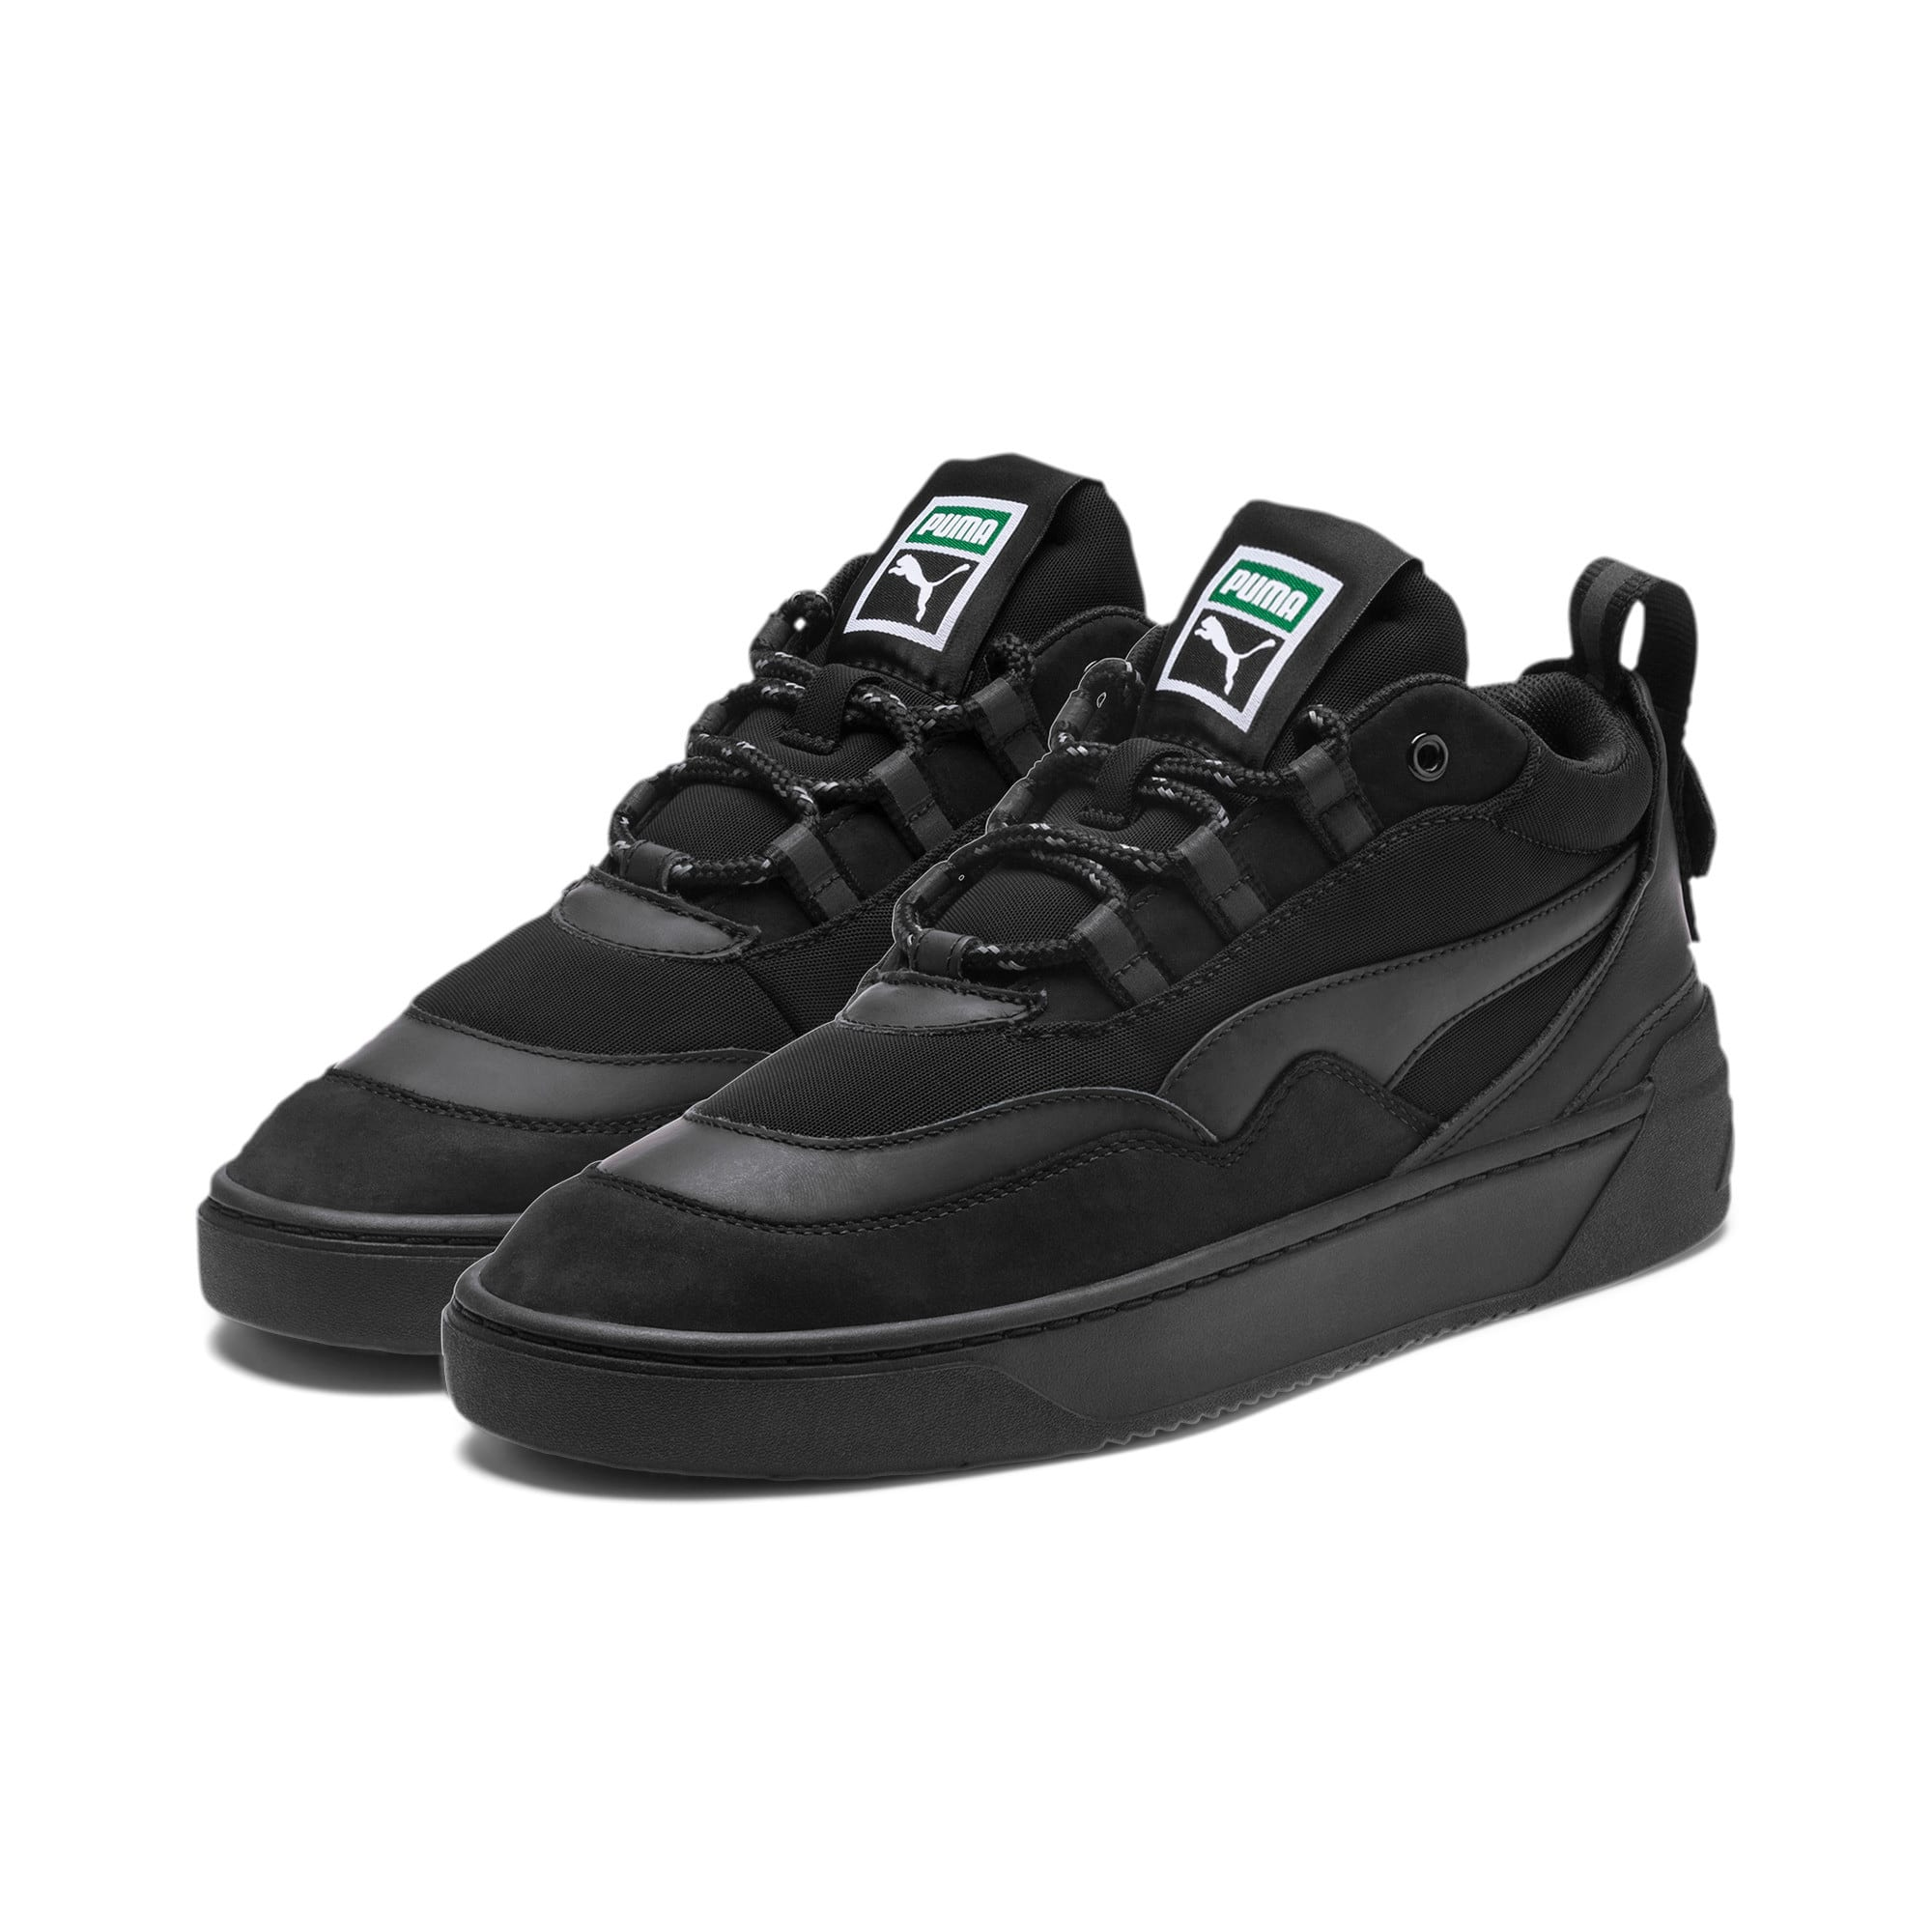 Thumbnail 2 of Cali Zero Demi Triple Black Trainers, Puma Black-Puma Black, medium